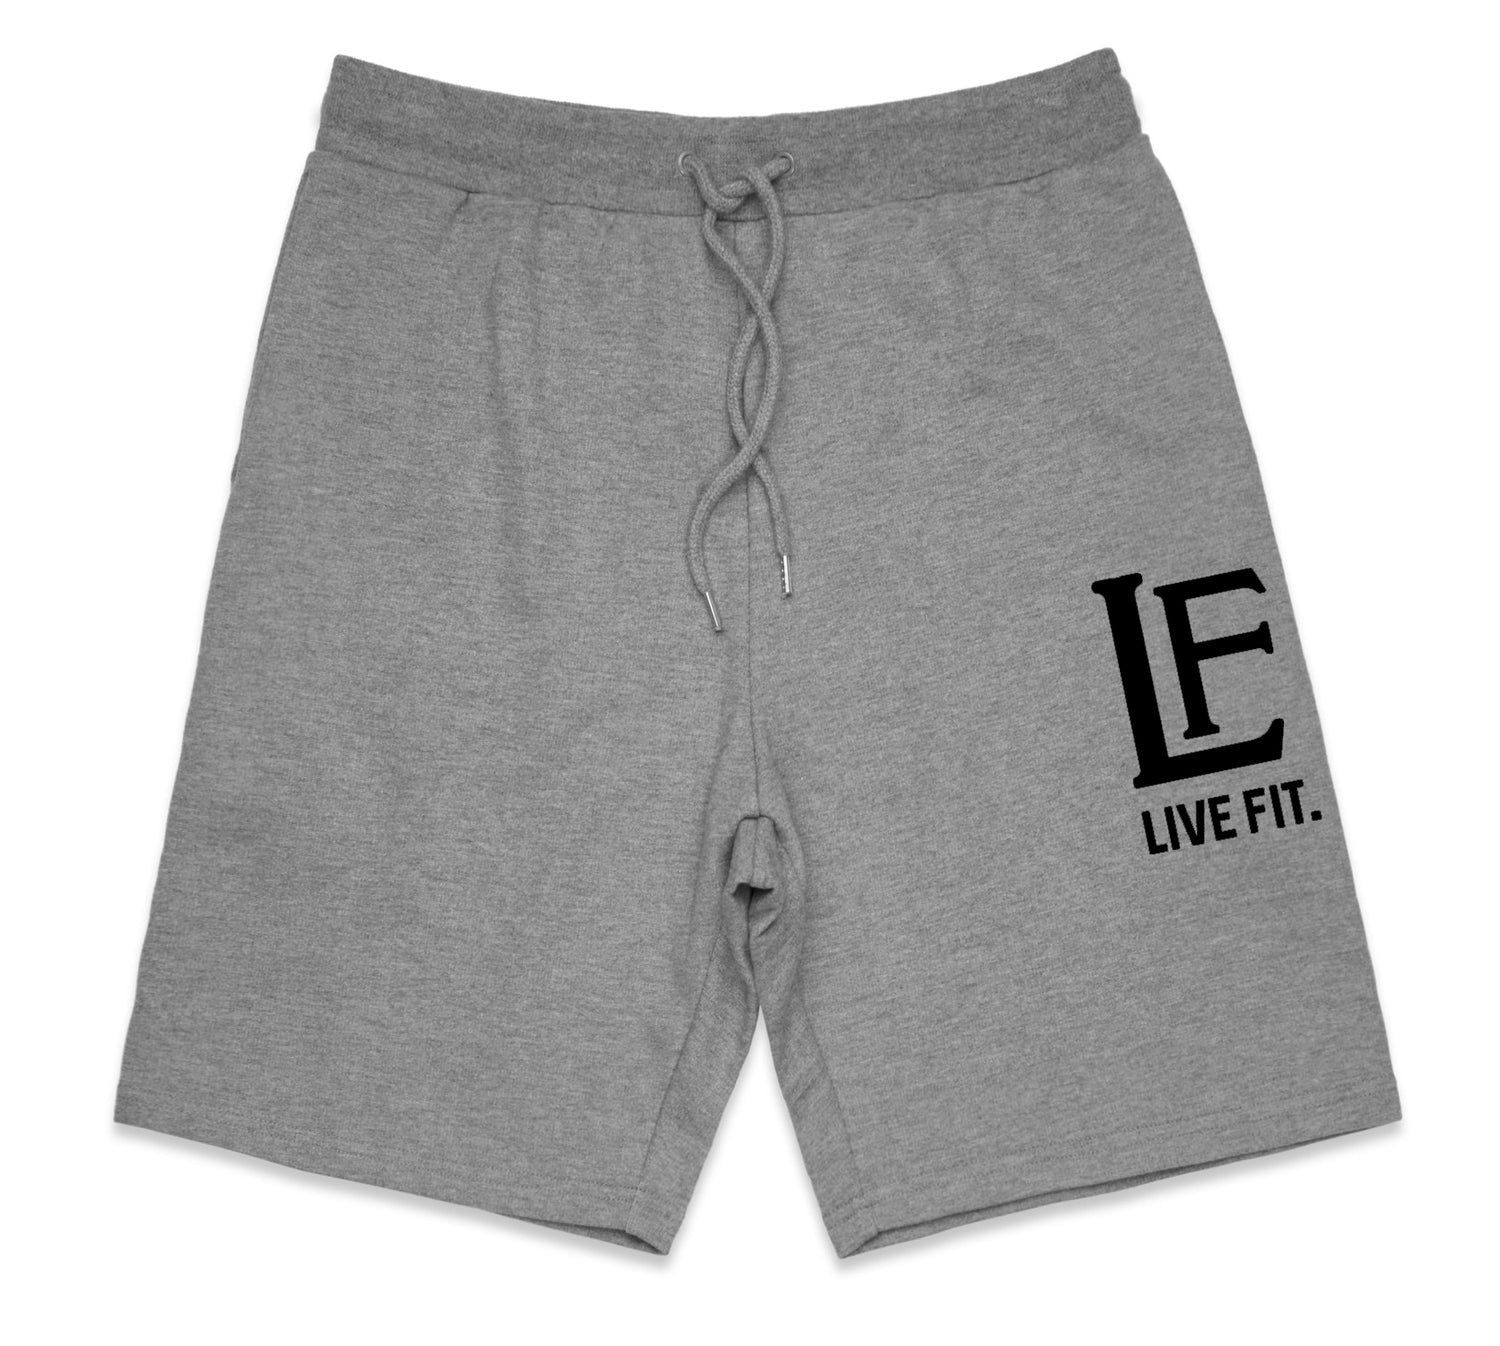 Live Fit Apparel LF Shorts - Heather Grey - LVFT